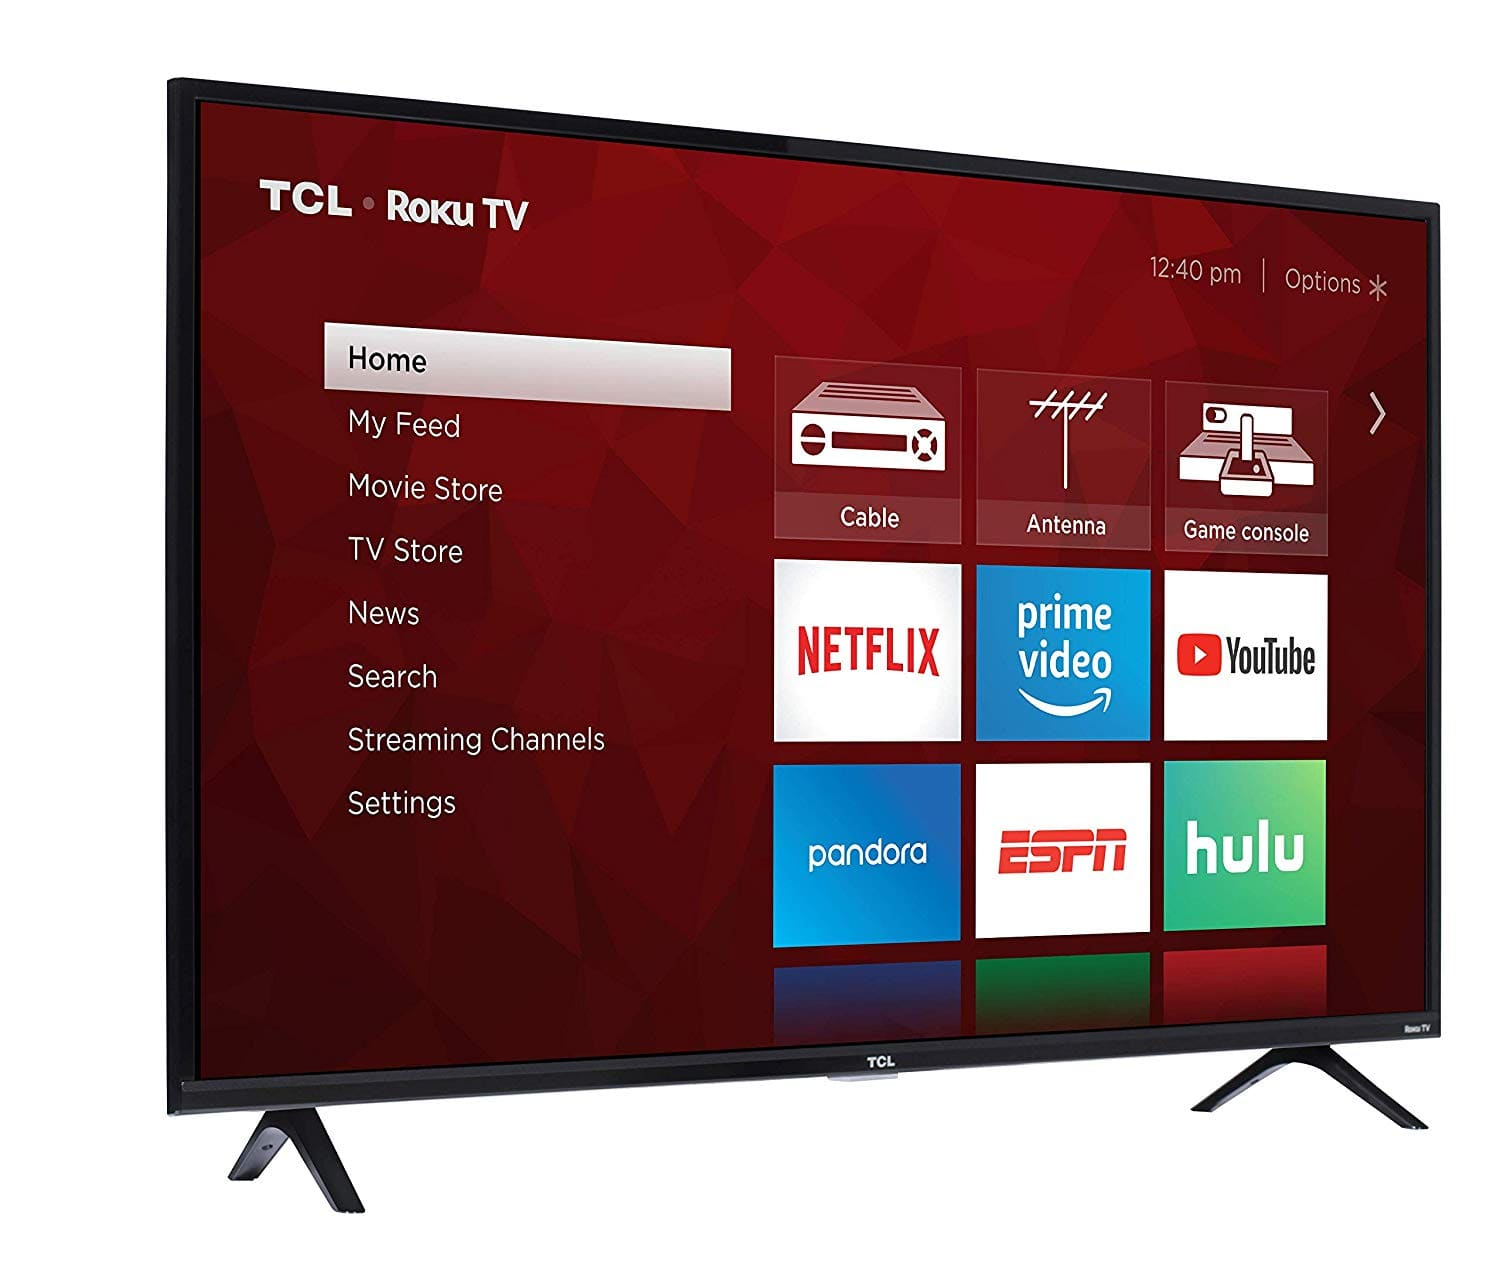 TCL 49S325 49 Inch 1080p Smart Roku LED TV (2019) for $199.99